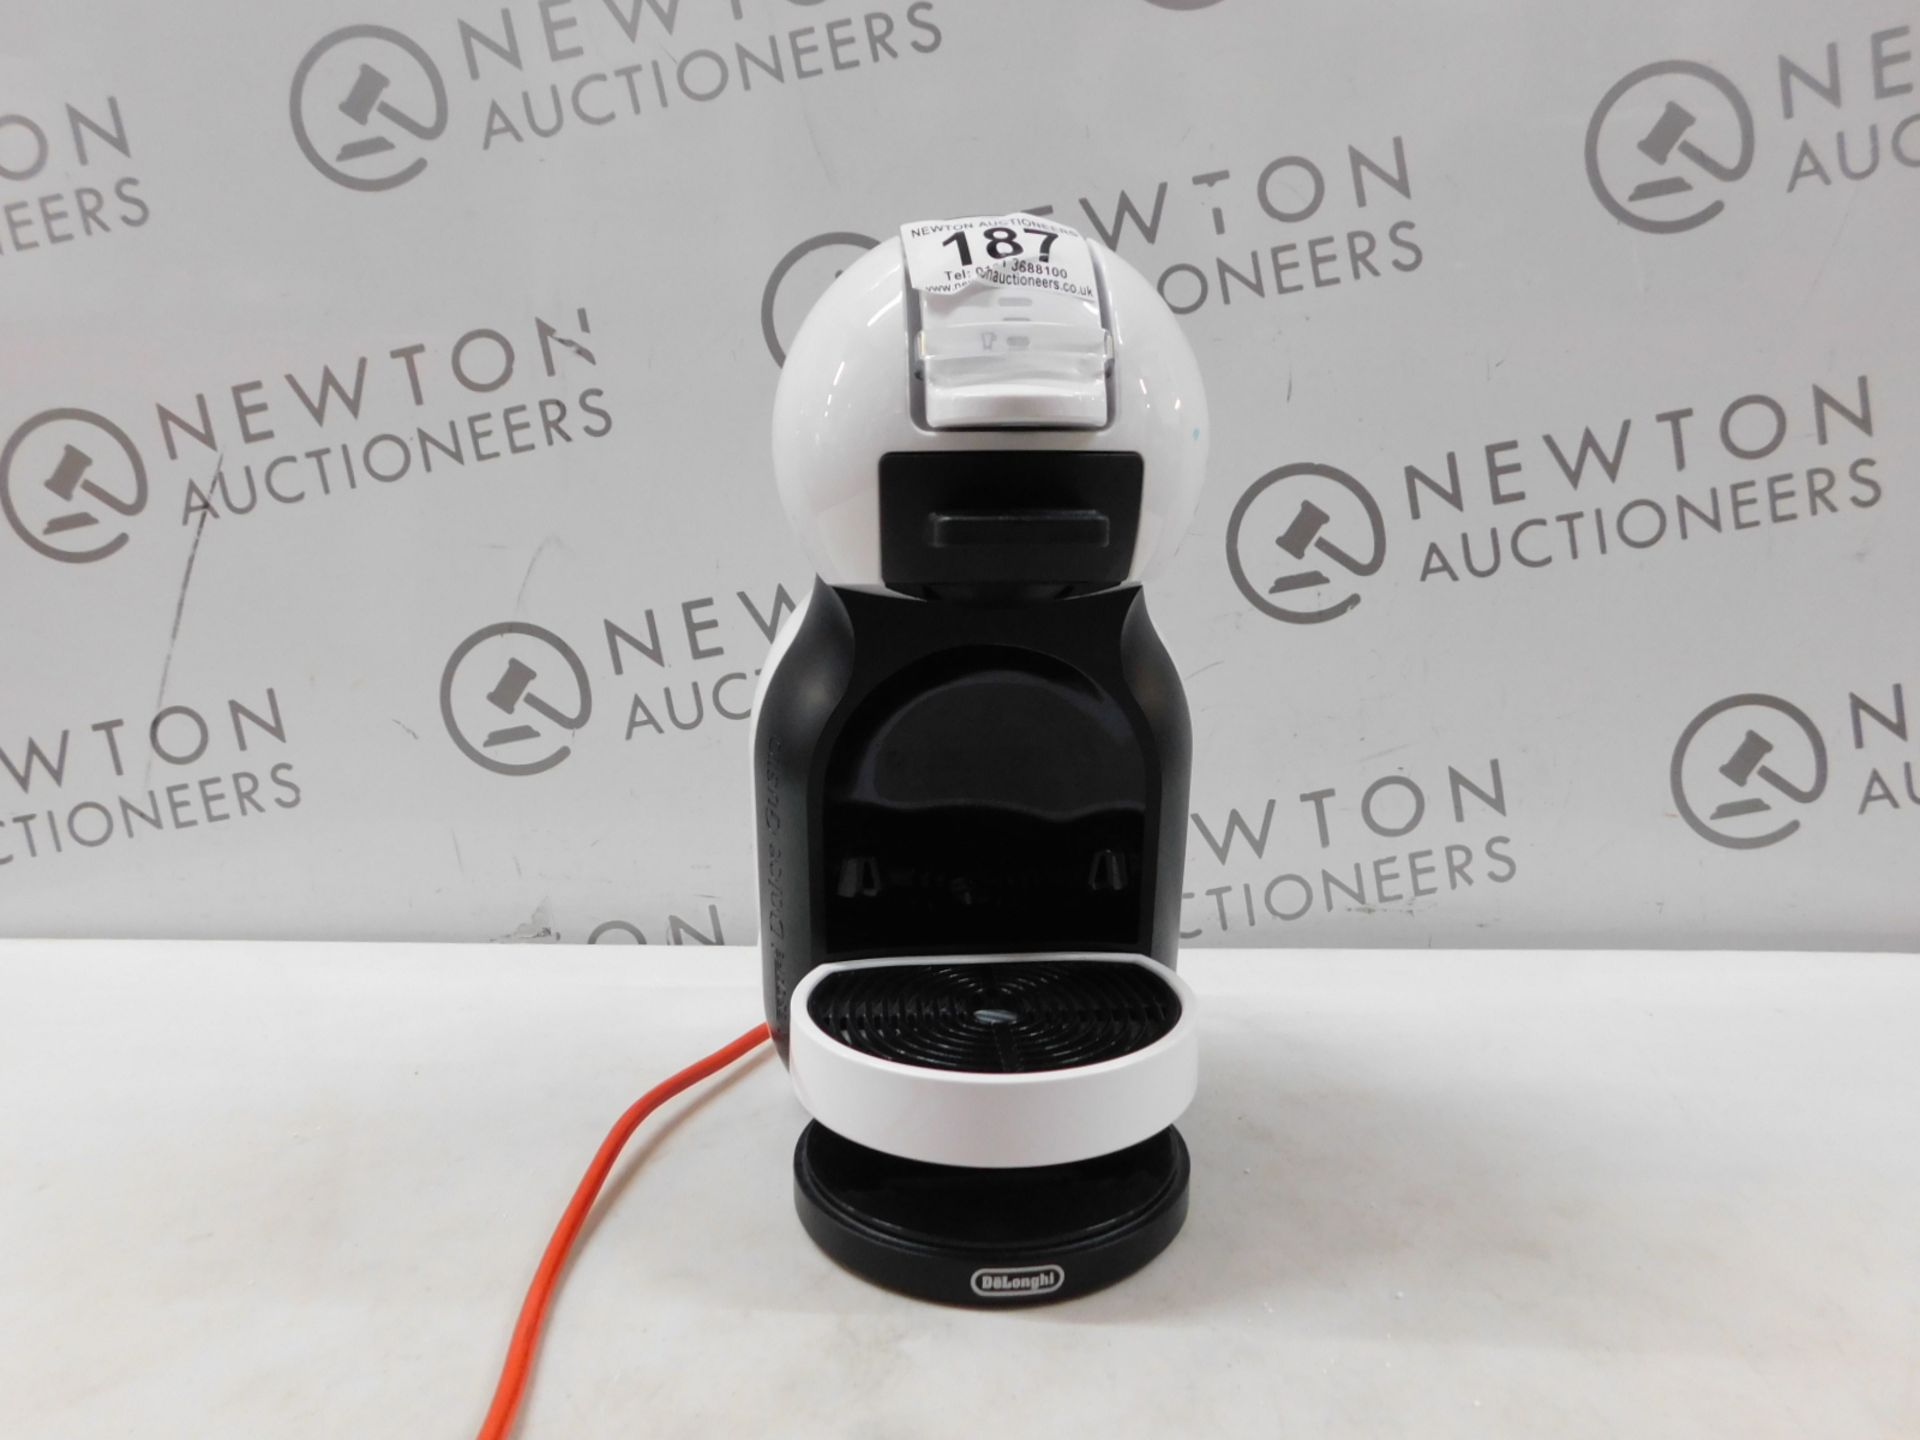 1 NESCAFE DOLCE GUSTO INFINISSIMA AUTOMATIC COFFEE POD MACHINE BY KRUPS RRP £114.99